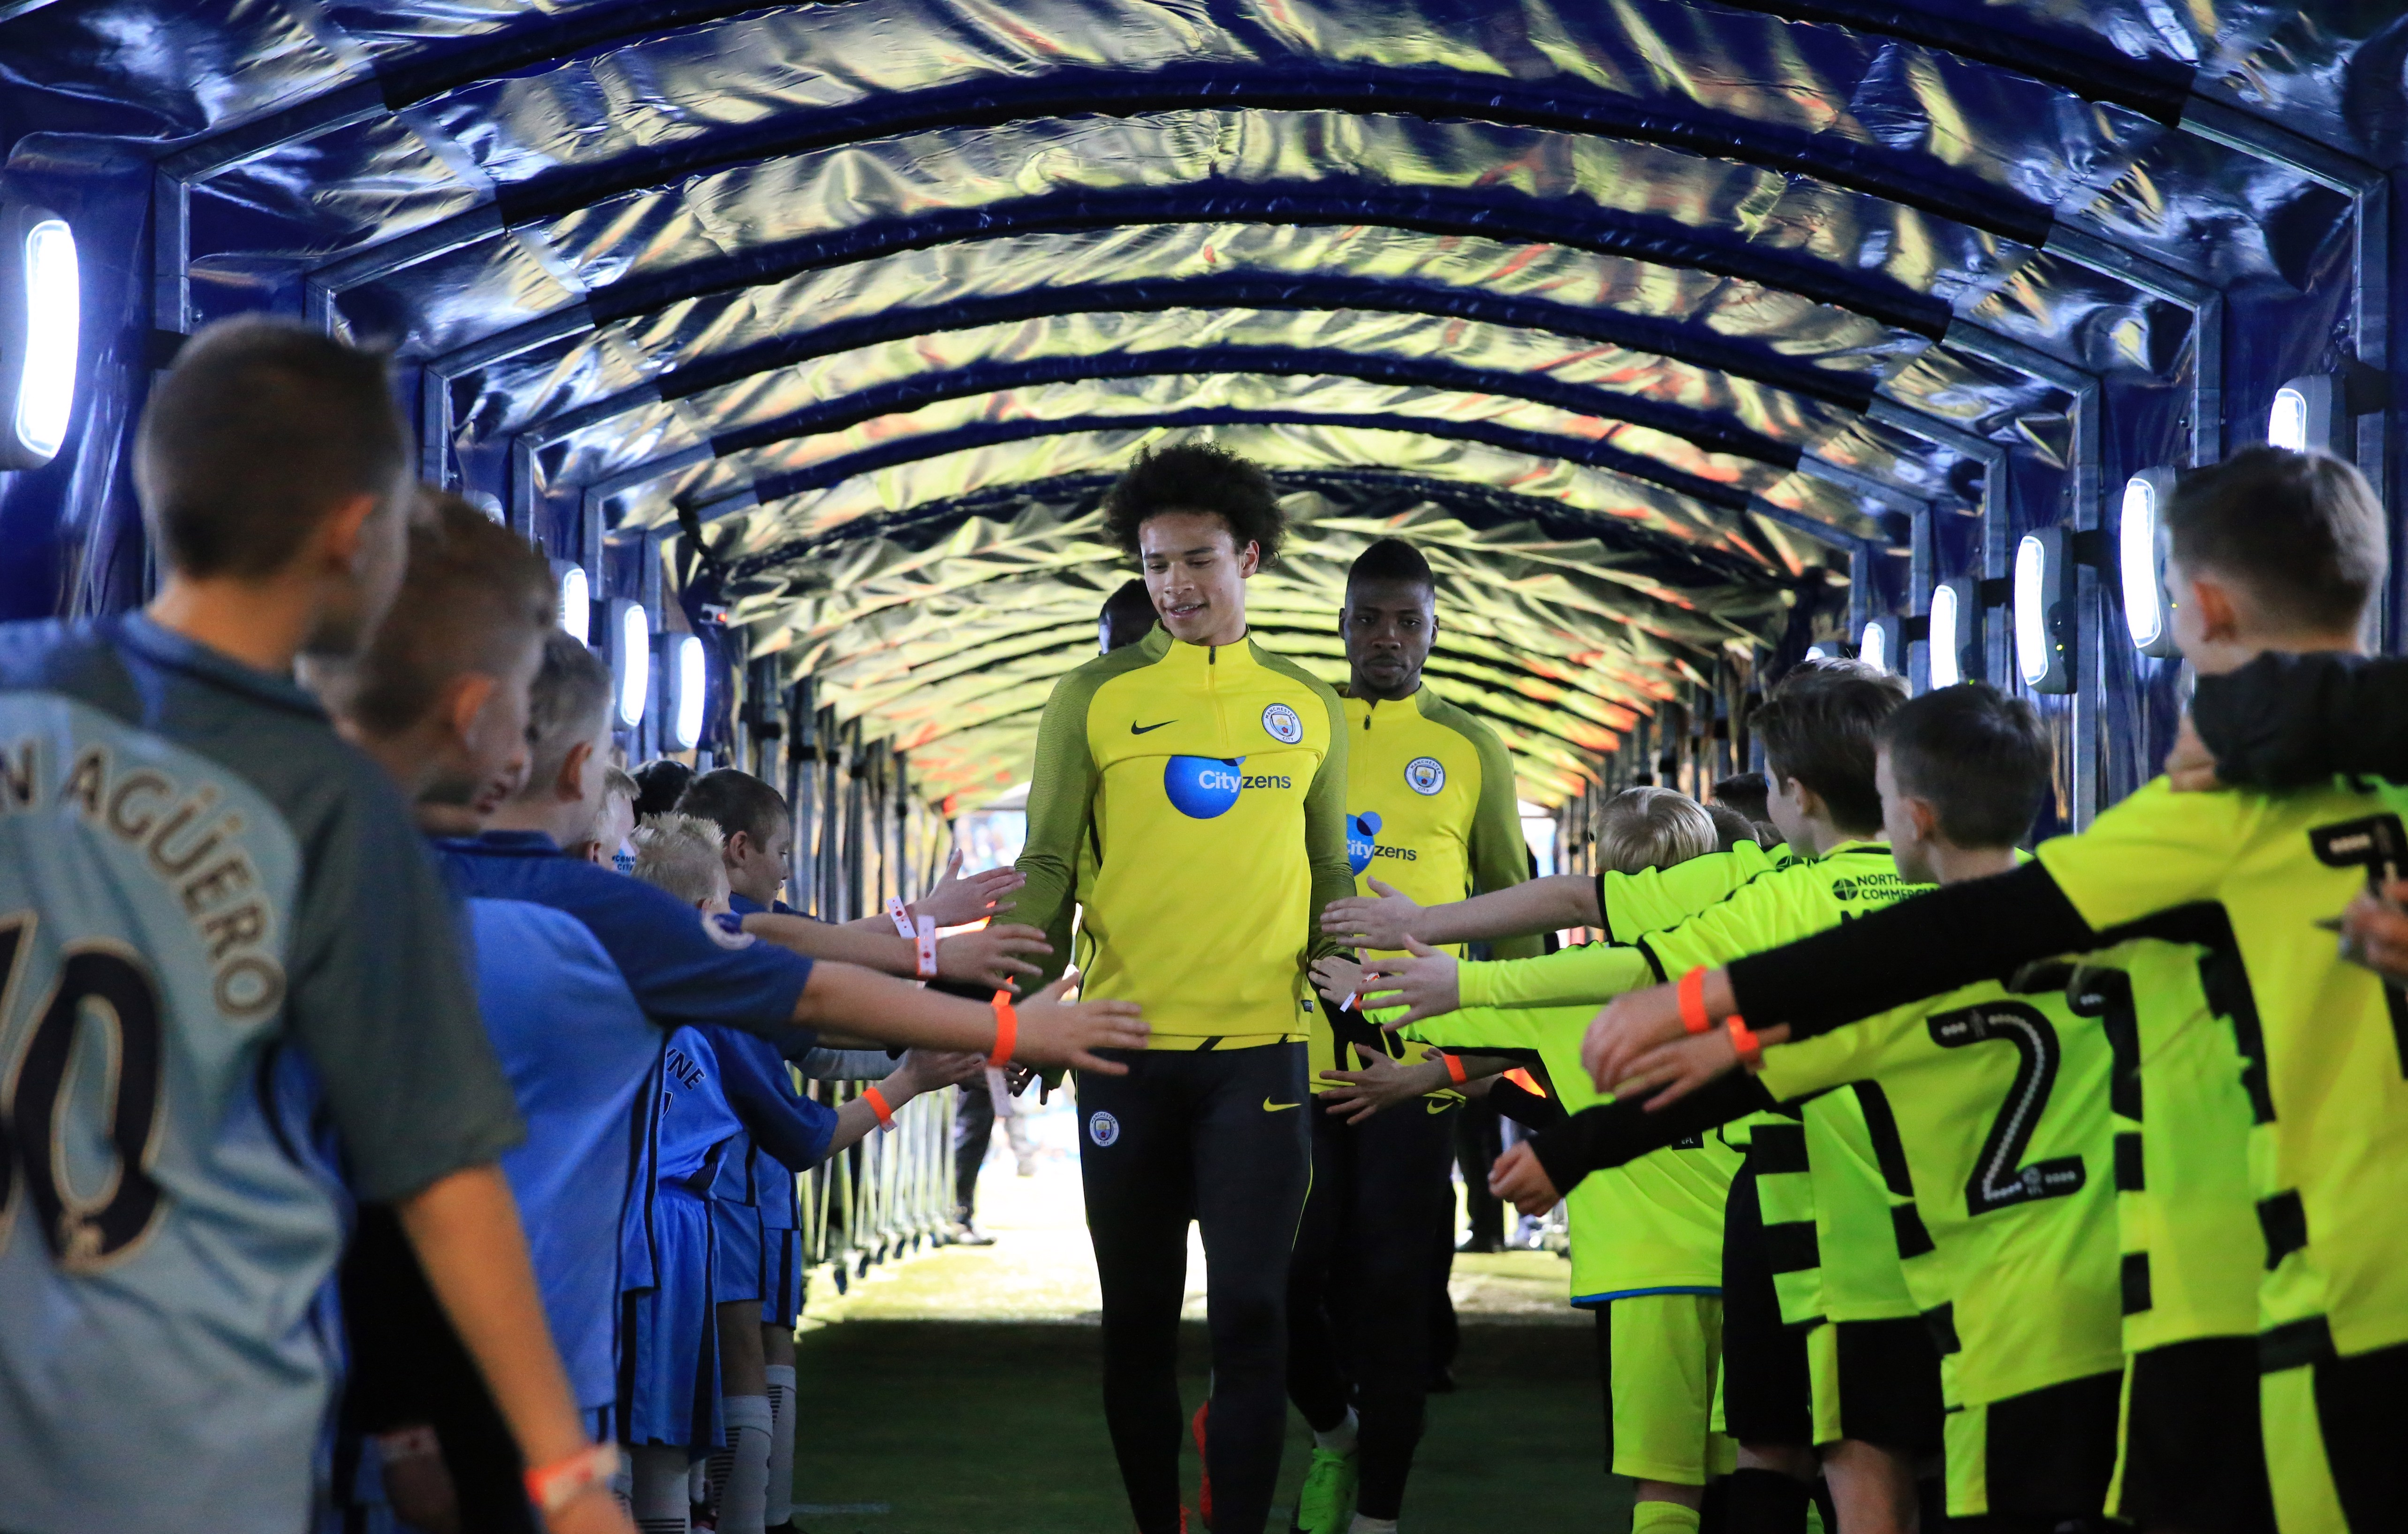 TUNNEL CAM: Leroy Sané walks through the player's tunnel, pre-match of City v Huddersfield.